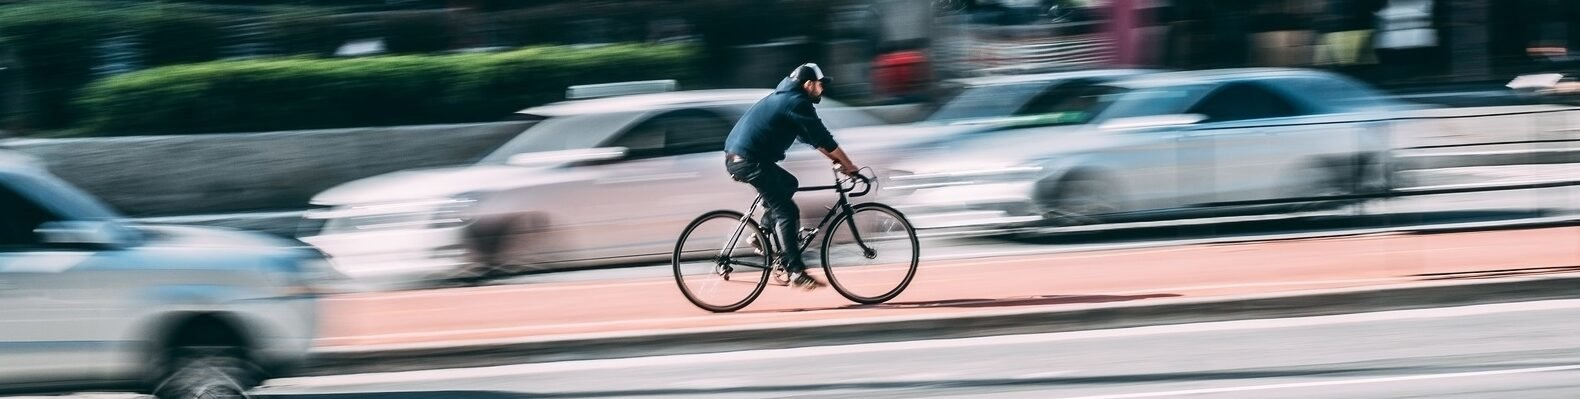 person riding bike as cars drive past